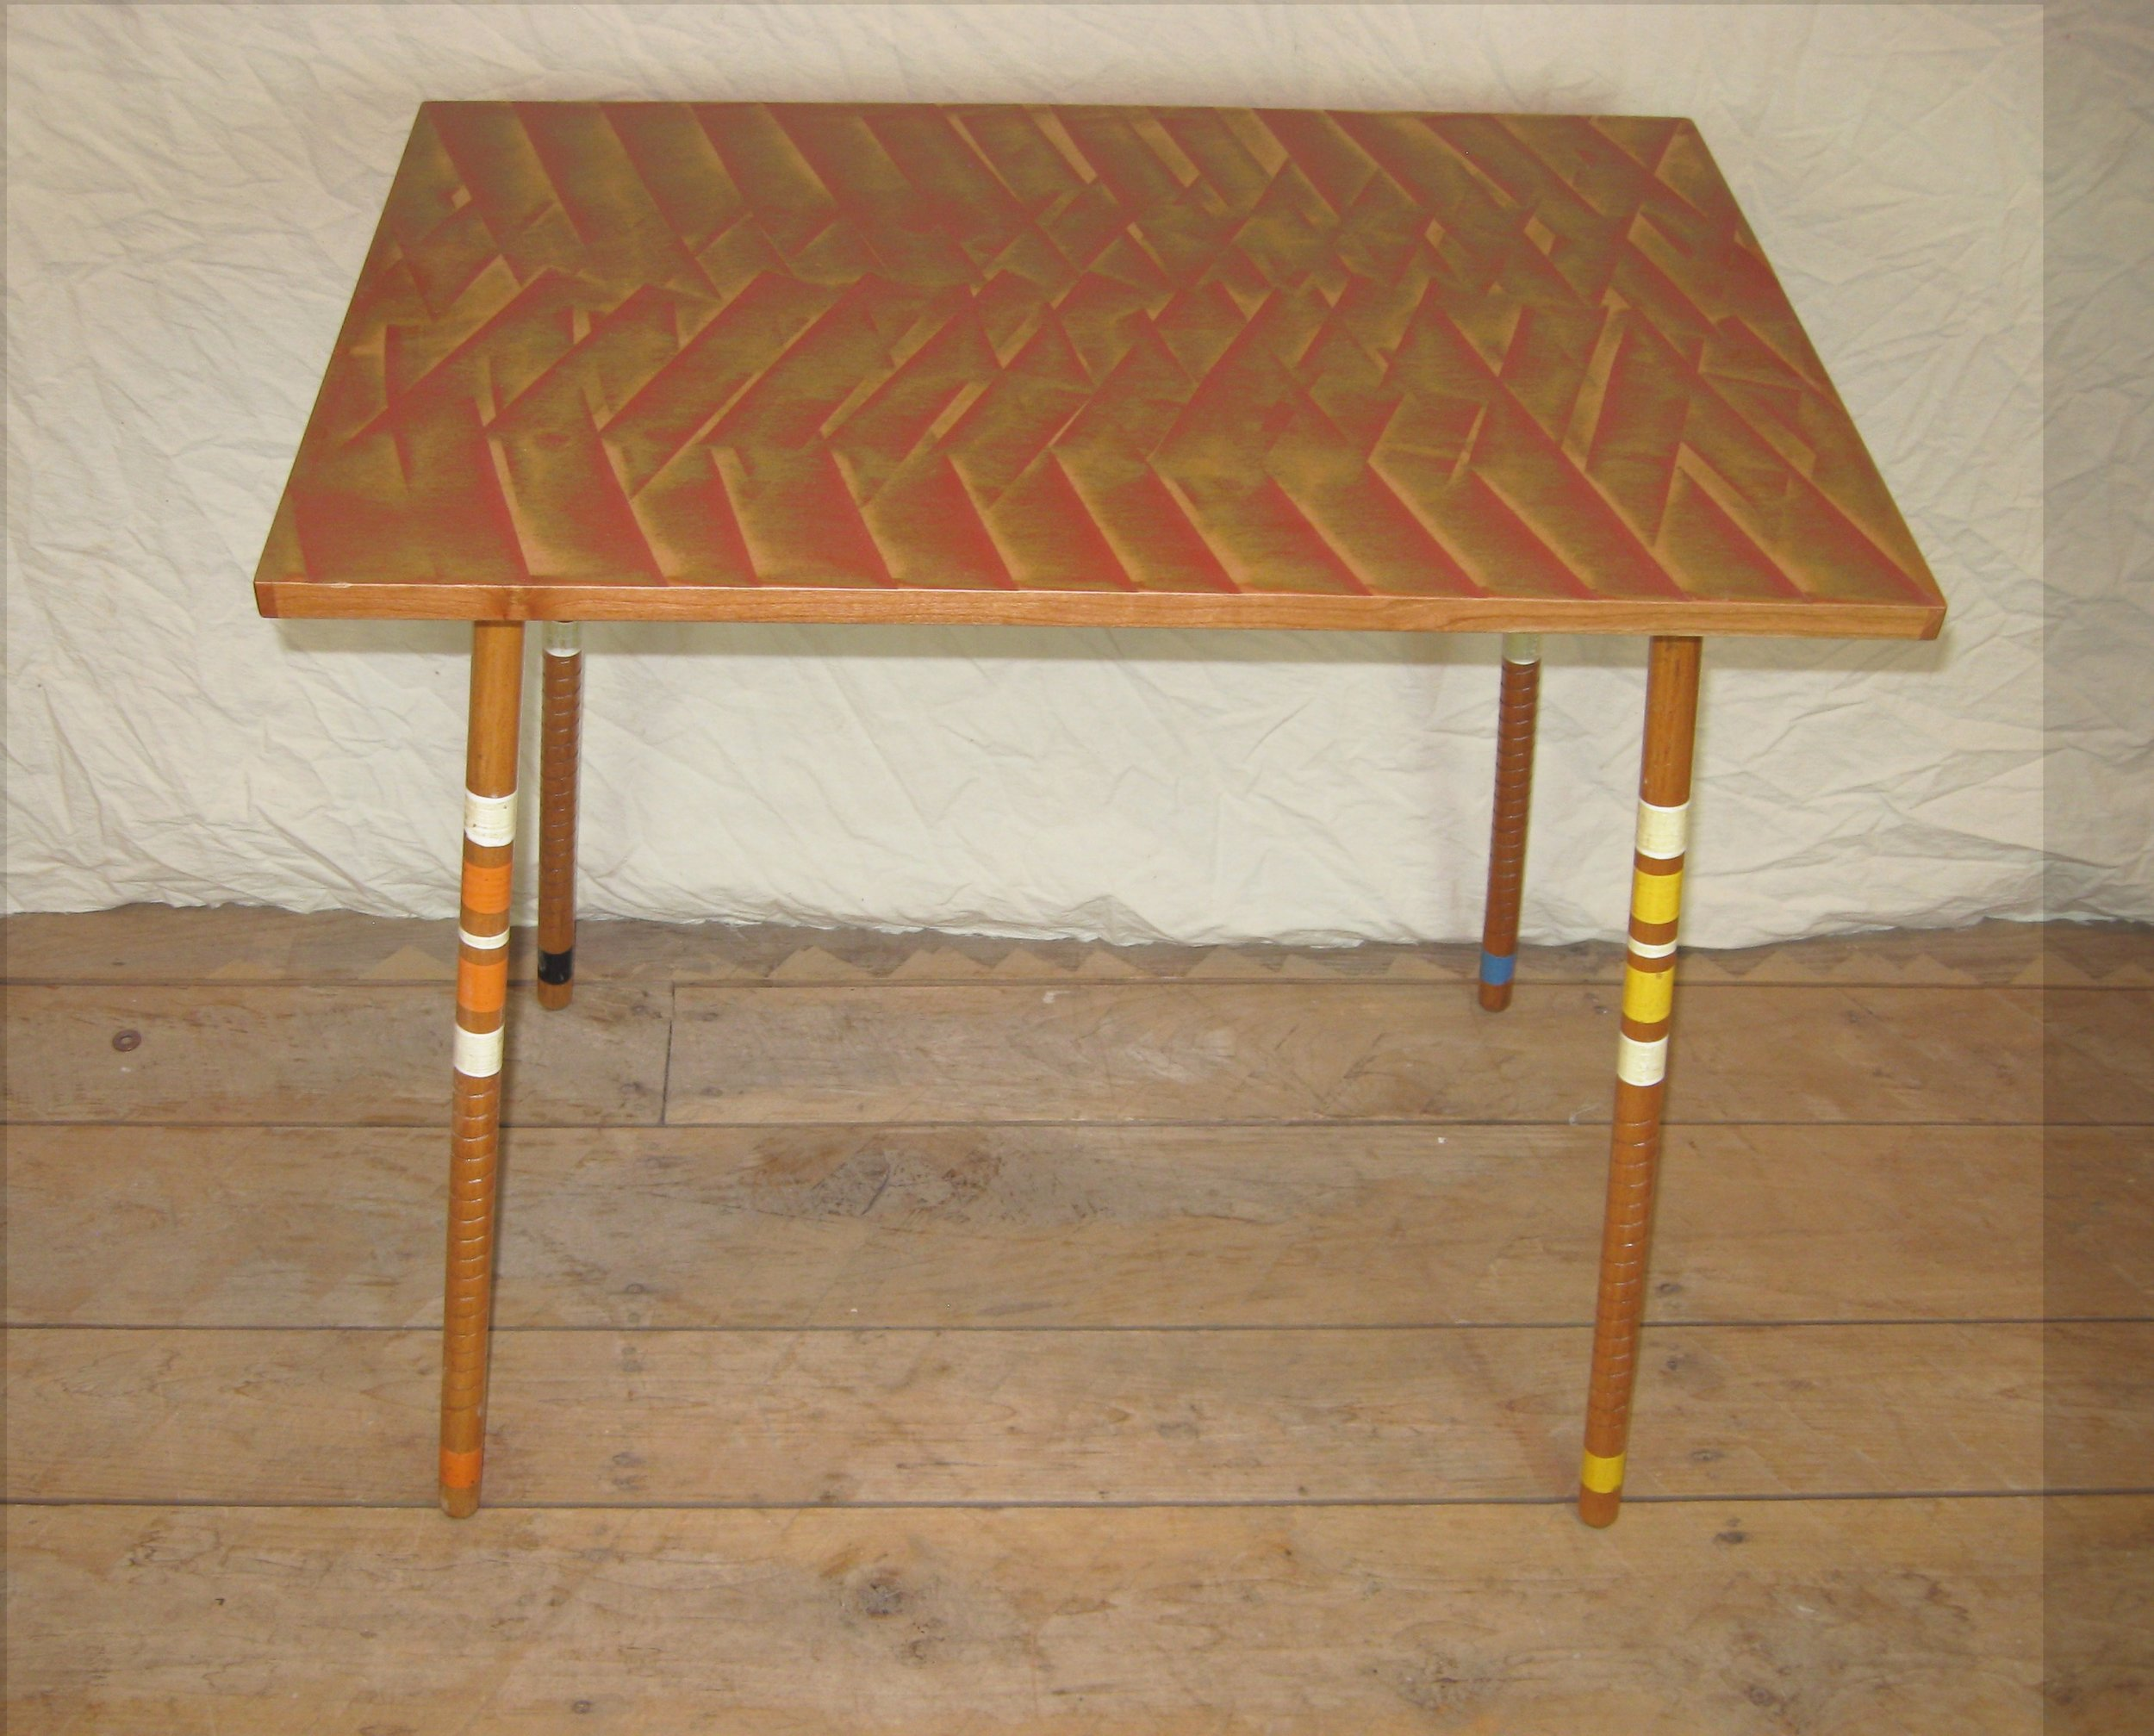 Croquet Table Top.jpg